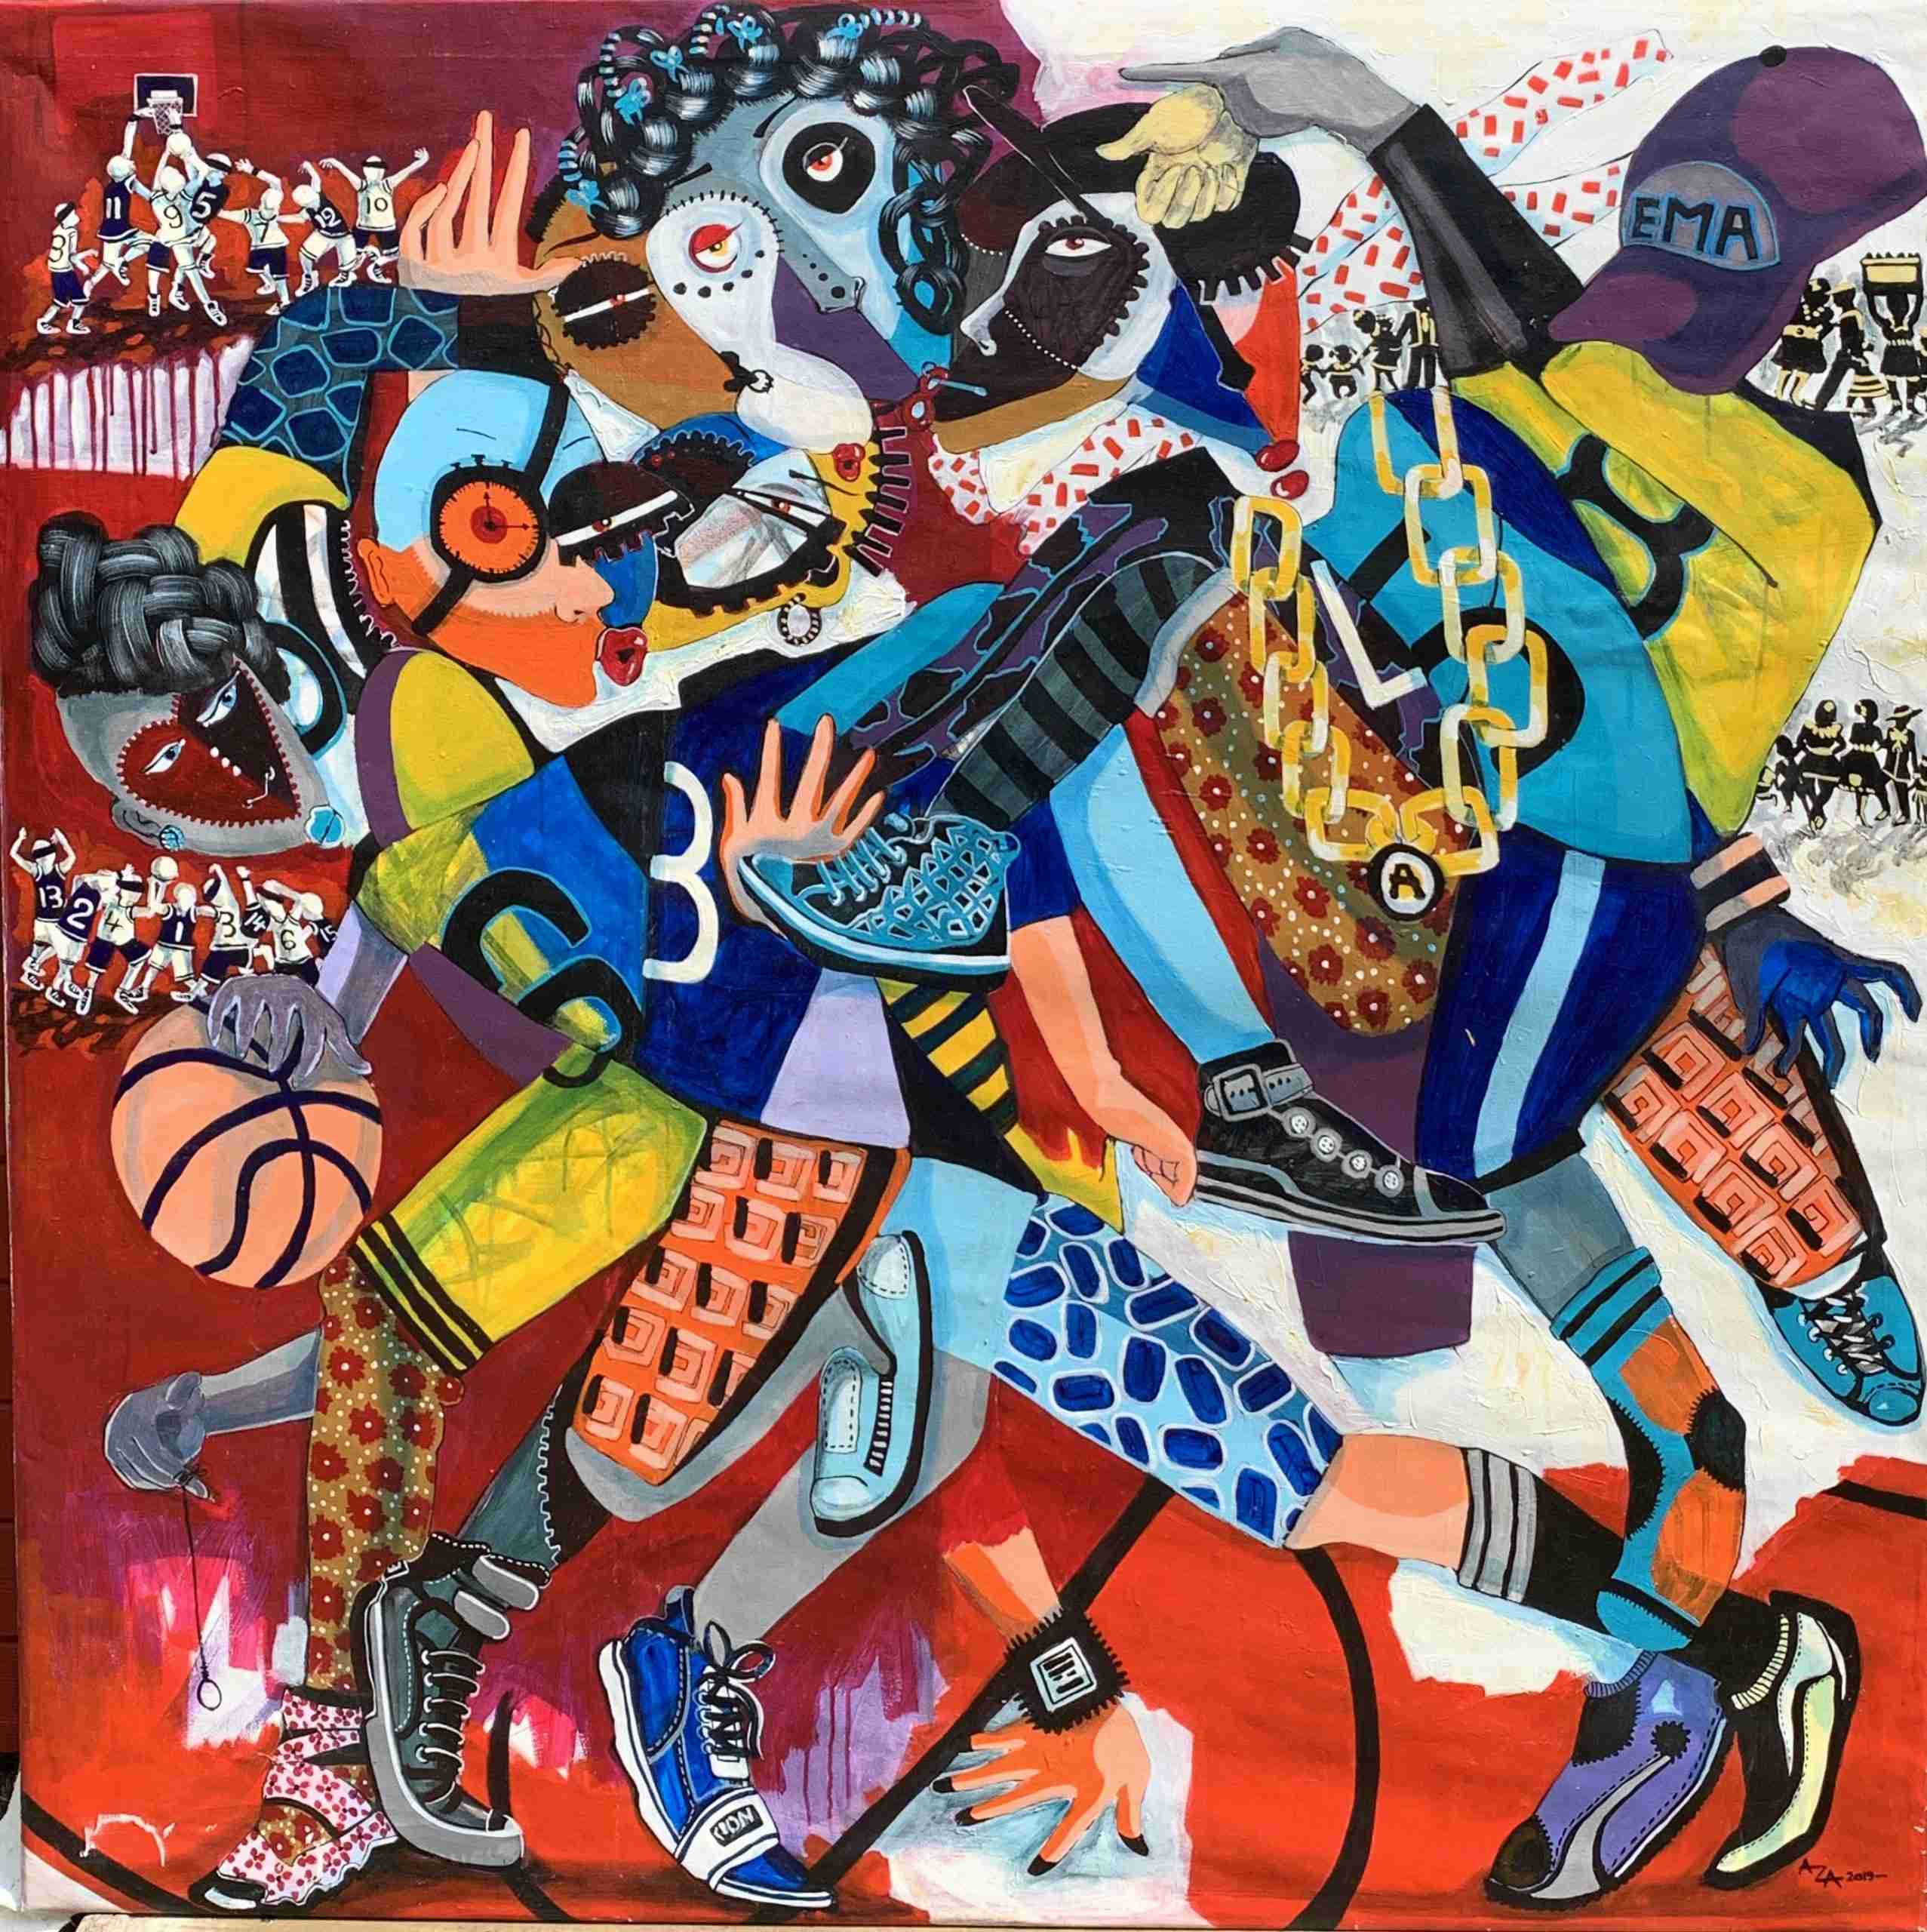 ENDURANCE (2019) BY AZA MANSONGI Acrylic on Canvas 120cm x 120cm